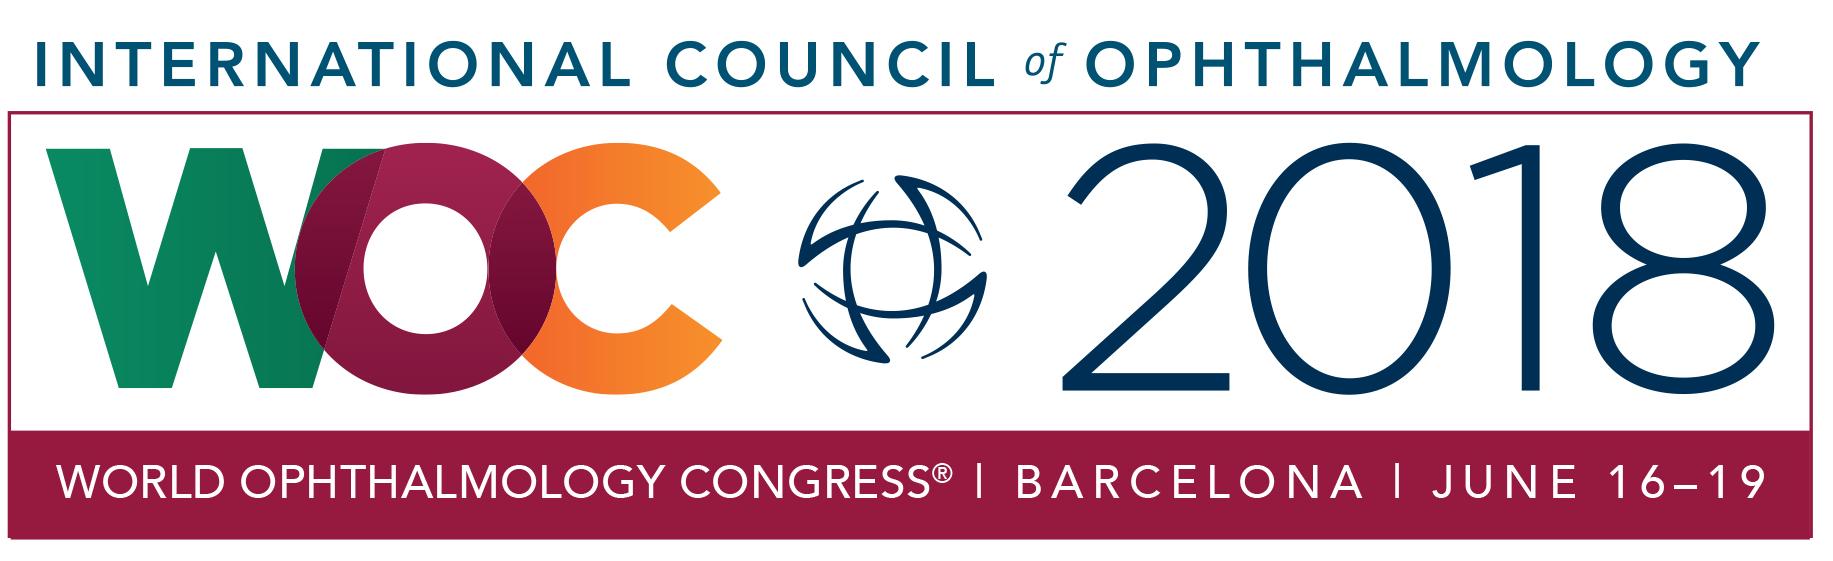 World Ophthalmology Congress 2018 - Logo